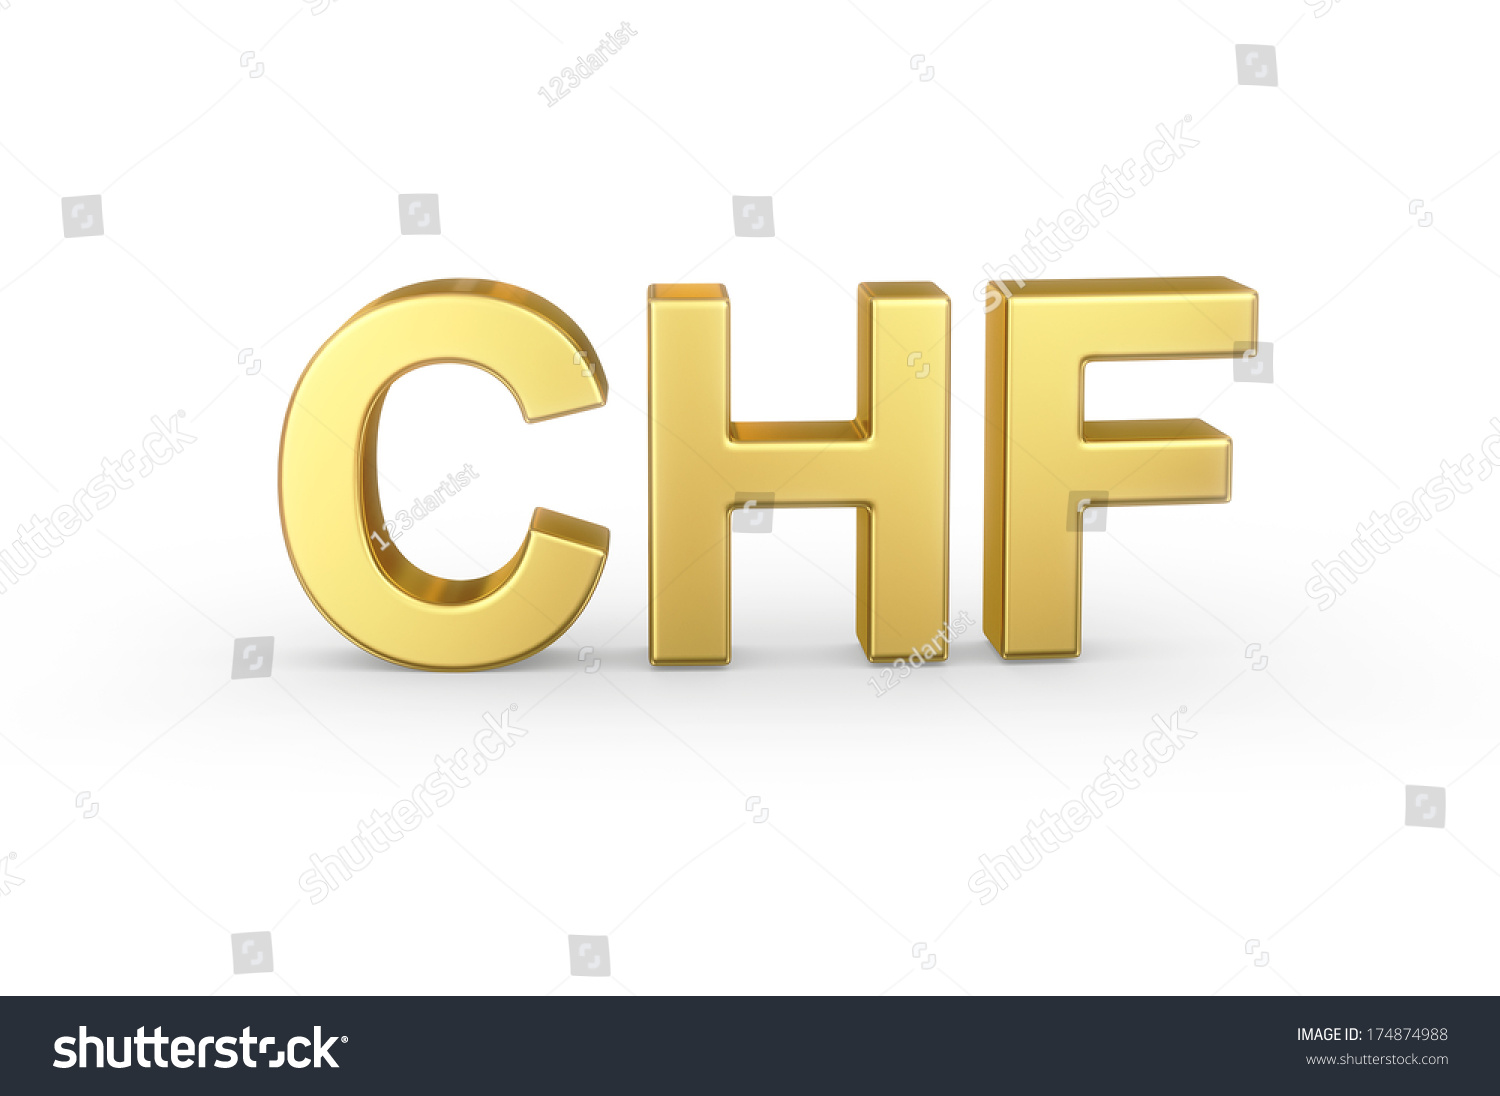 Golden 3d chf currency shortcut isolated stock illustration golden 3d chf currency shortcut isolated with clipping path buycottarizona Choice Image